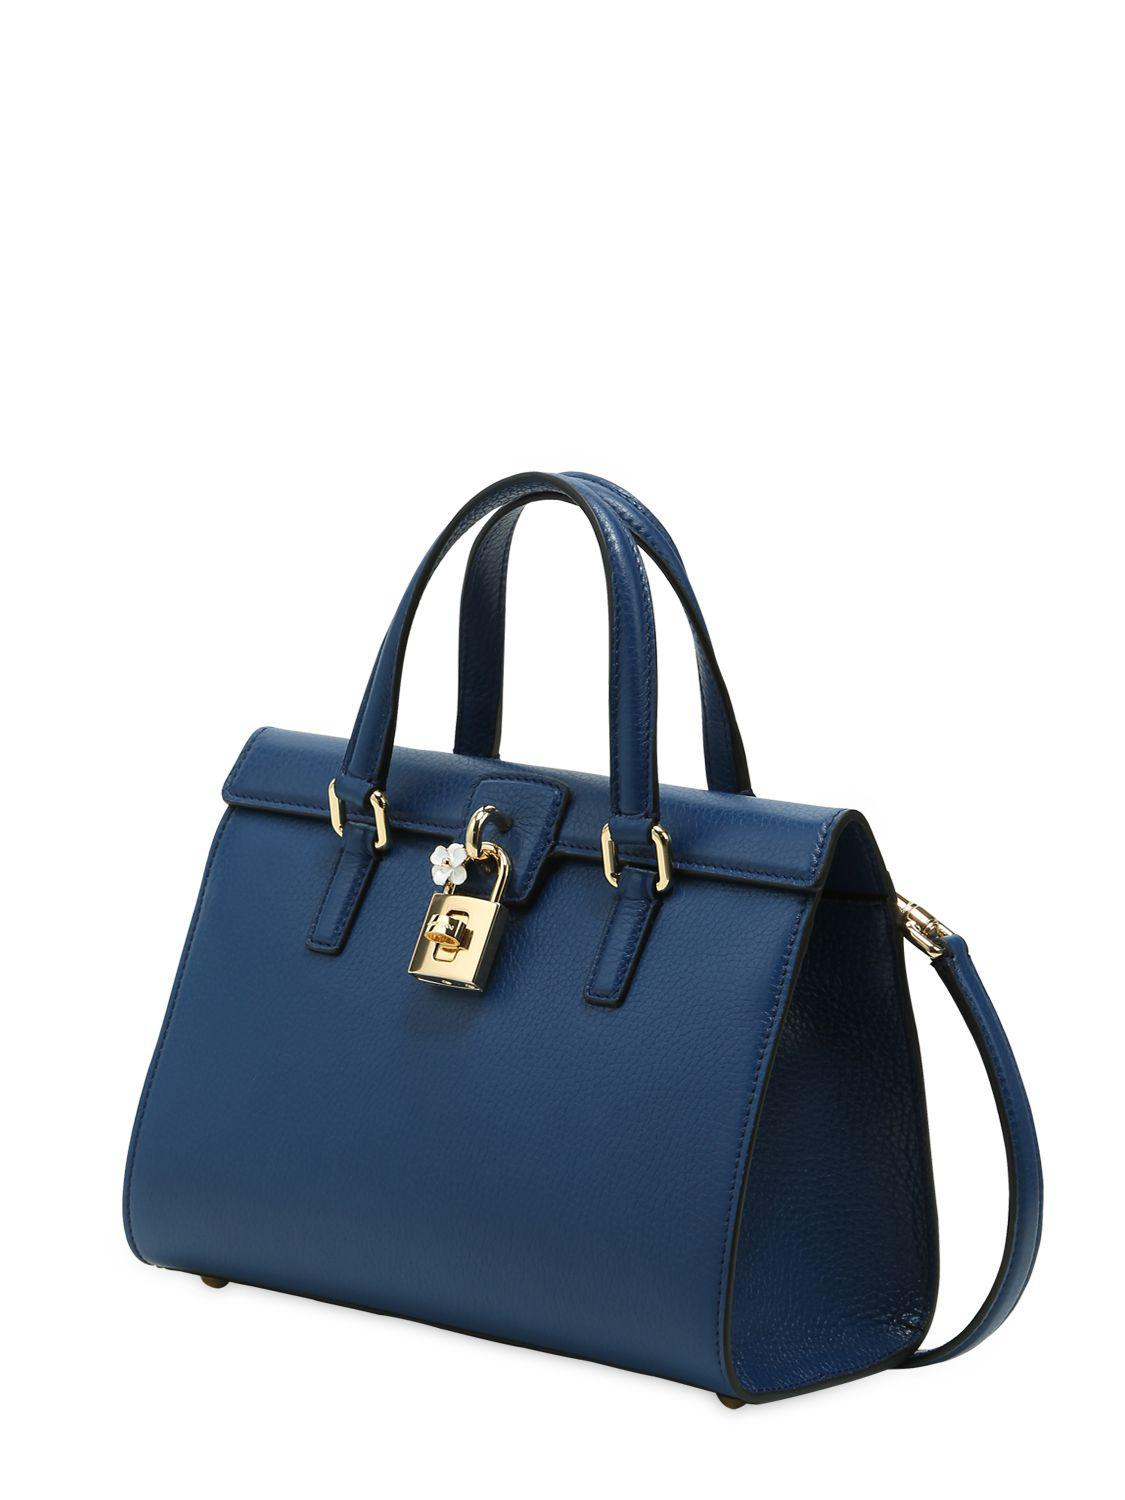 0a8072db9a Lyst - Dolce   Gabbana Dolce Lady Grained Leather Bag in Blue